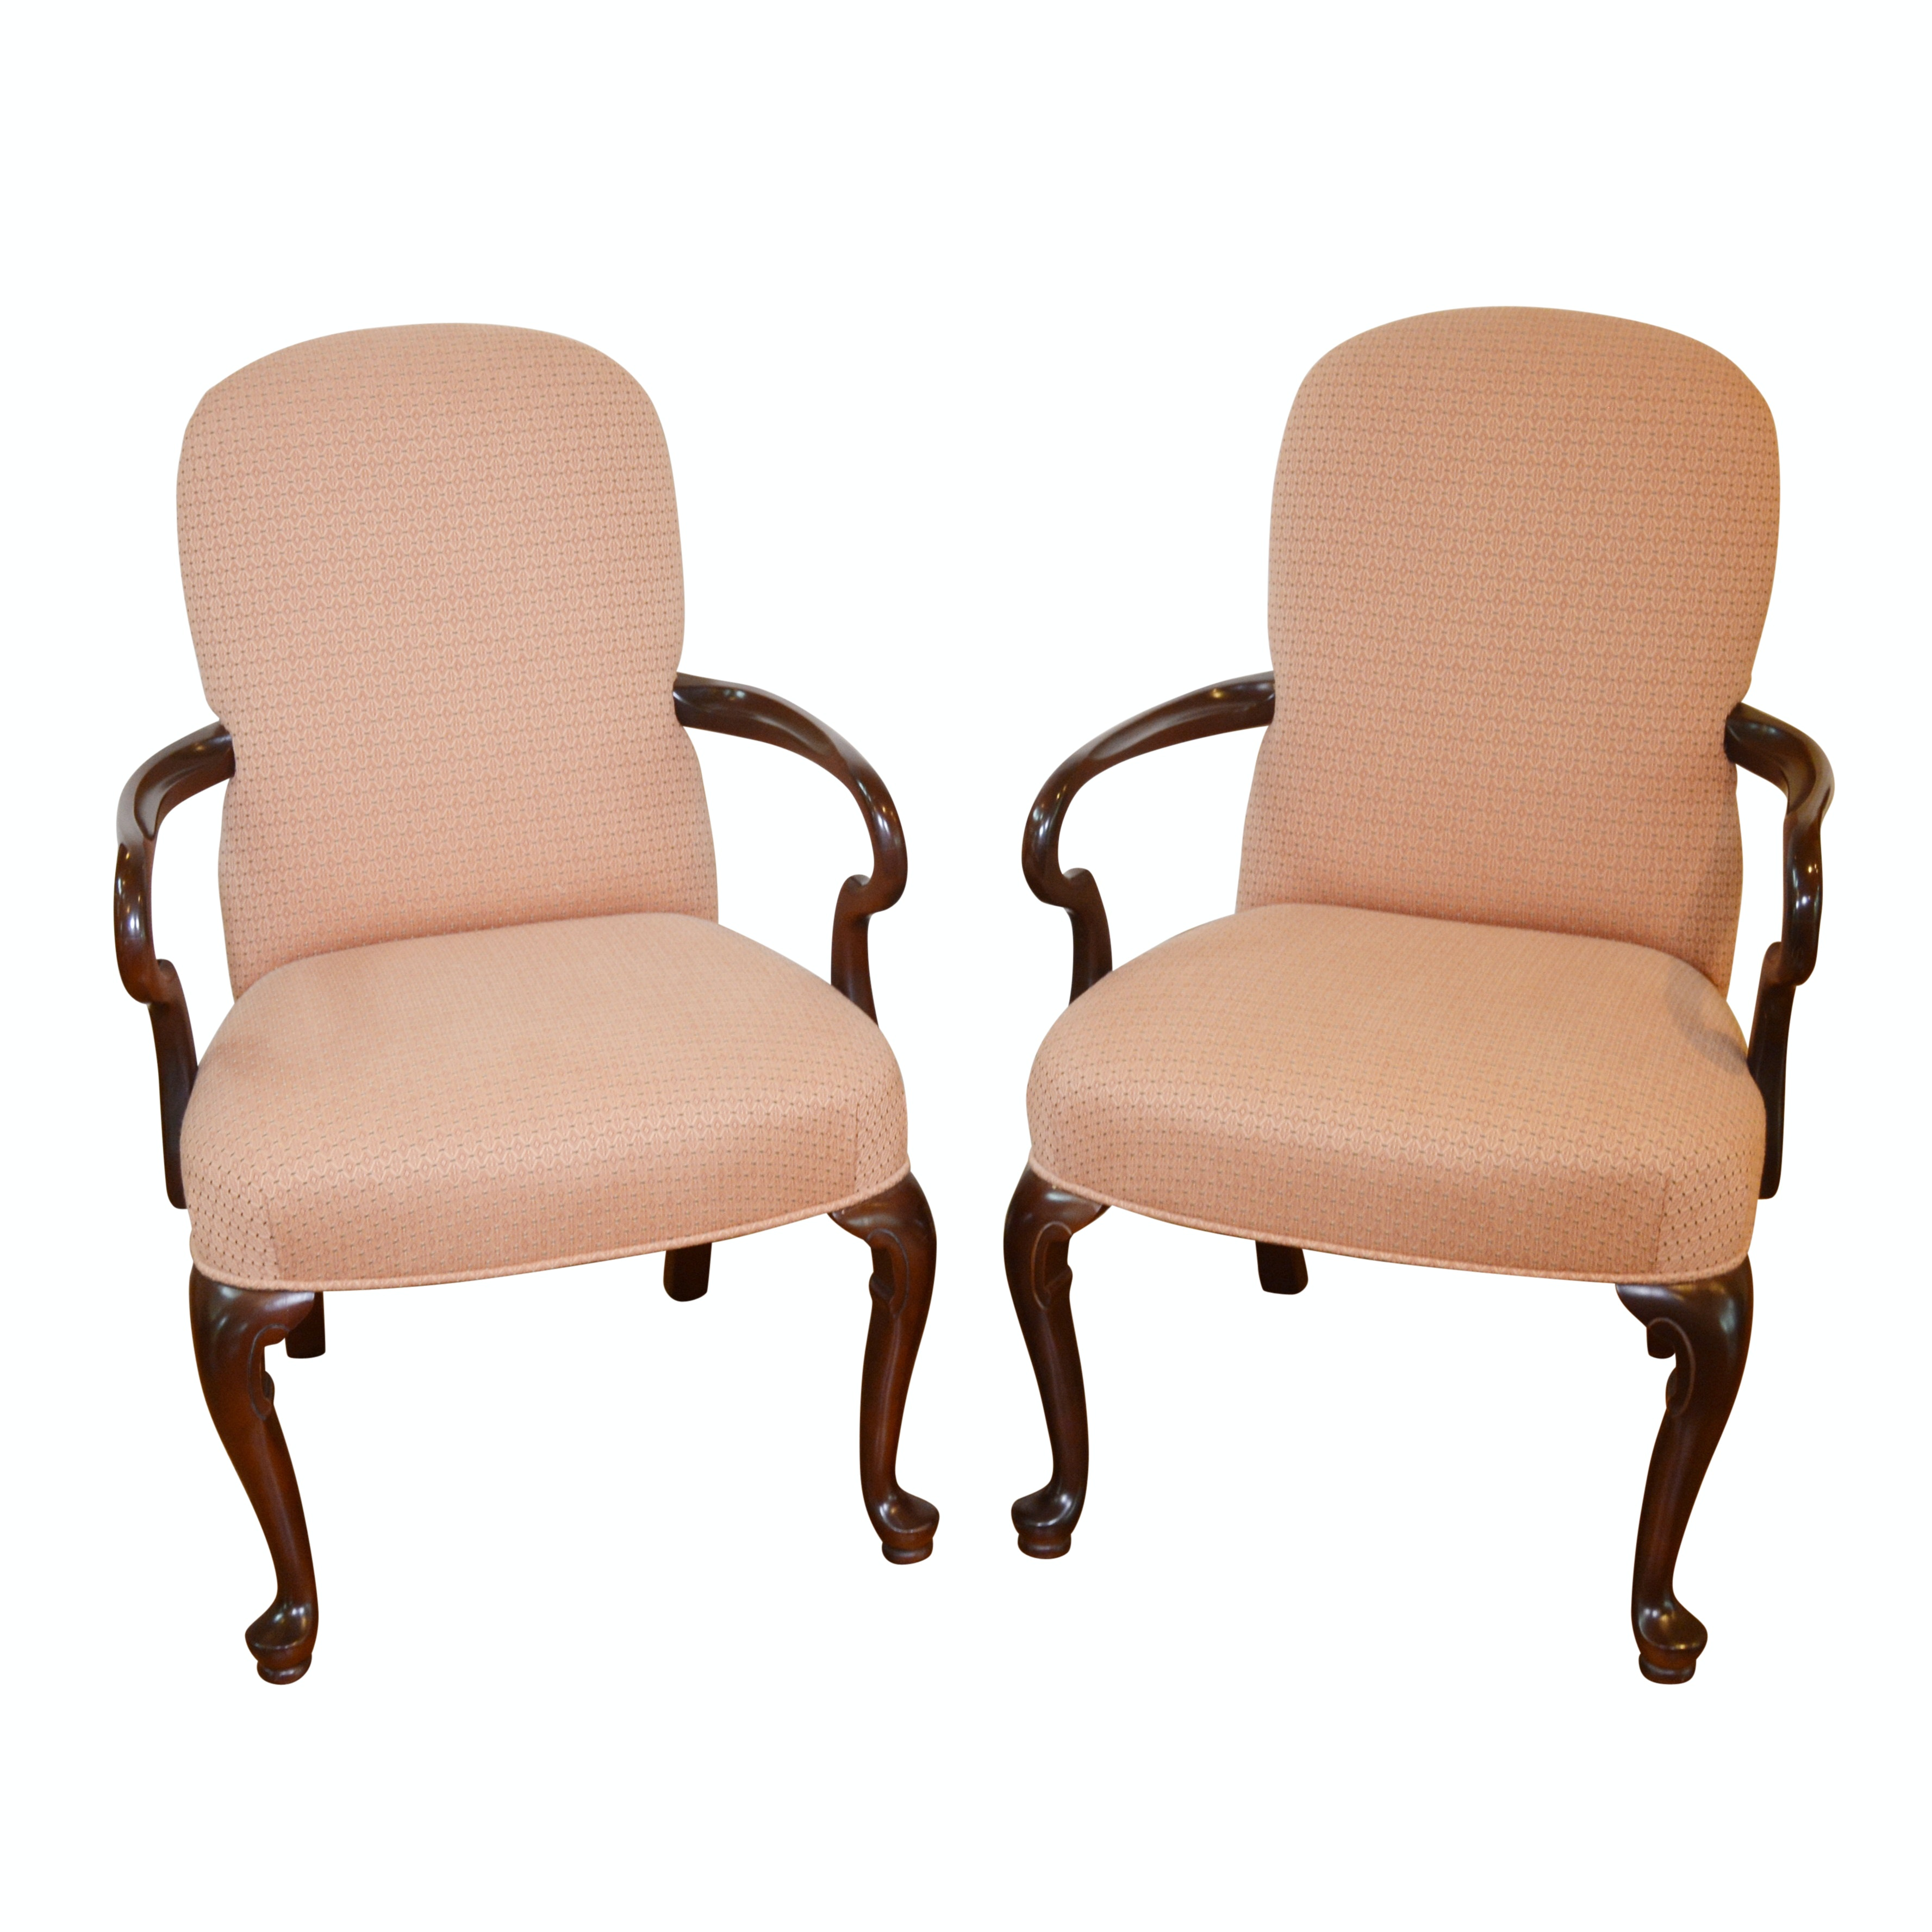 Contemporary Pair of Upholstered Armchairs by Ethan Allen, Late 20th Century